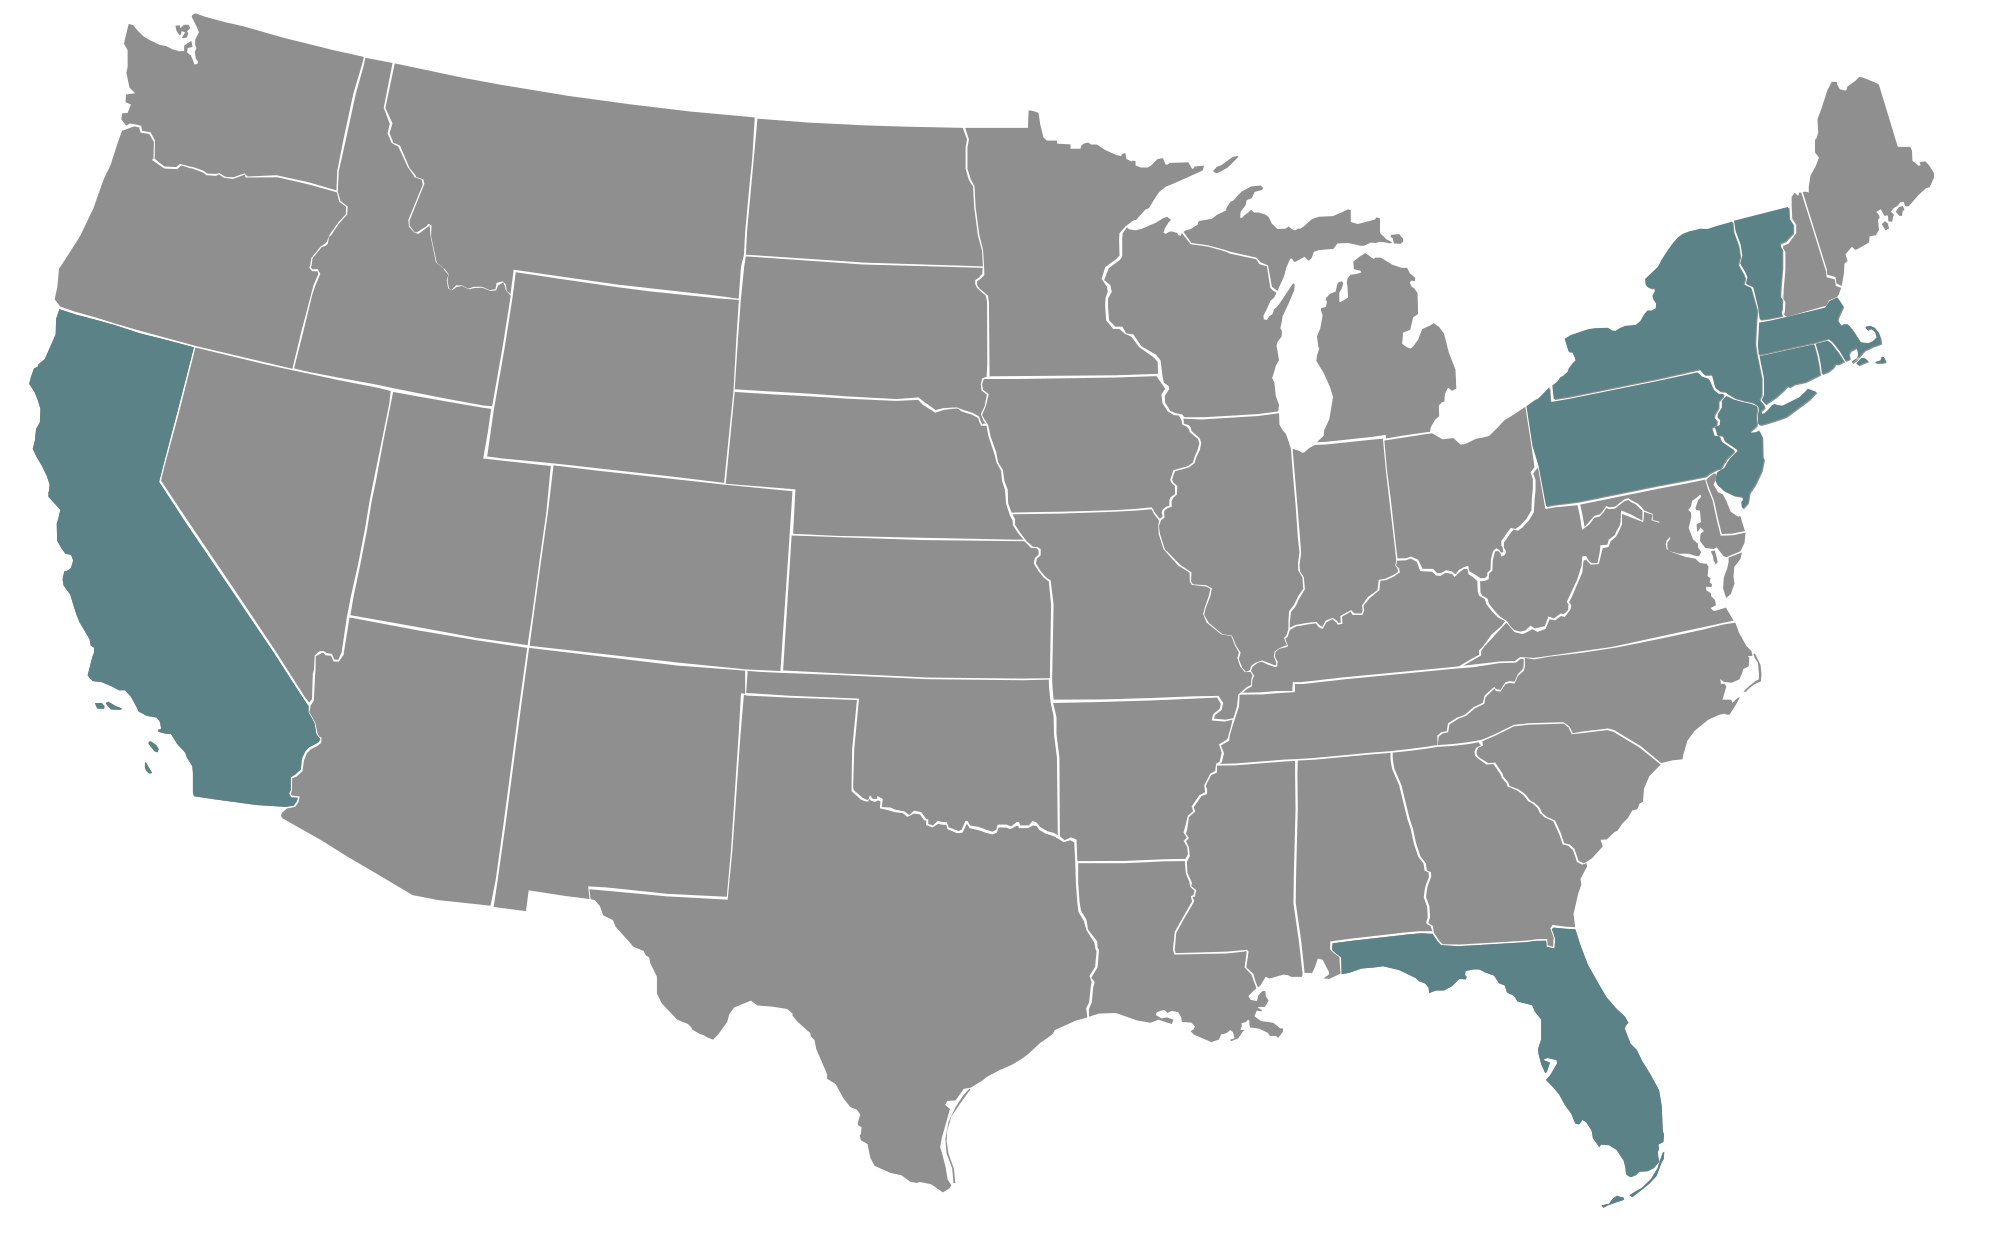 proper-o-leary-licensed-states-map-blue